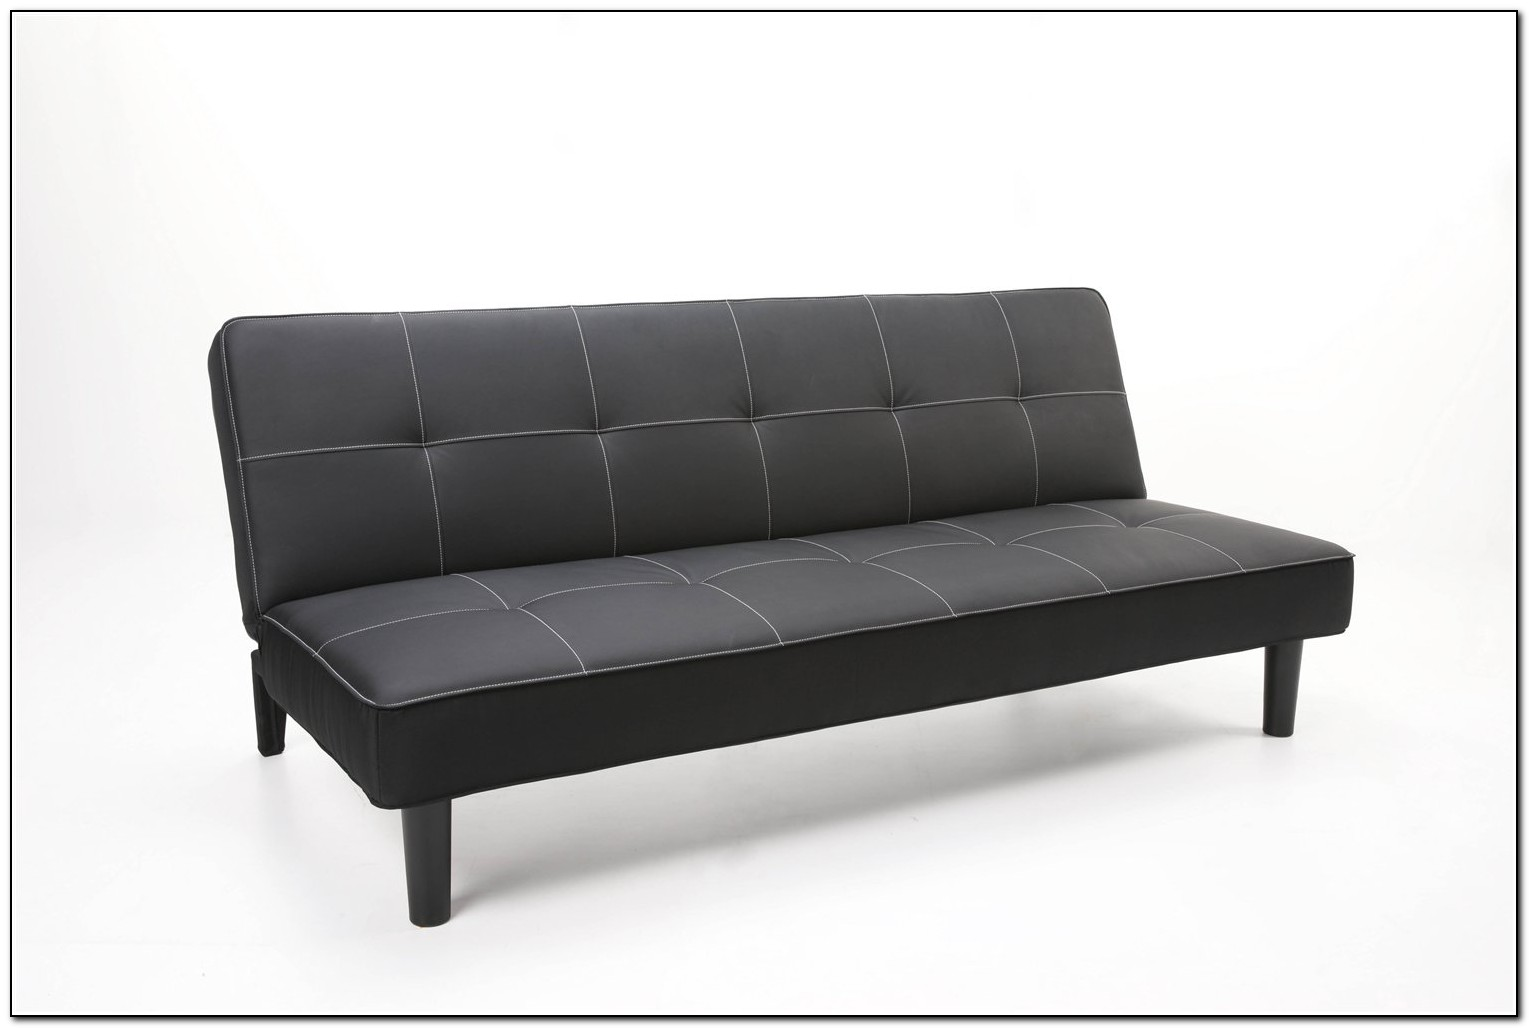 queen size sofa bed singapore 2 seater grey leather download page  home design